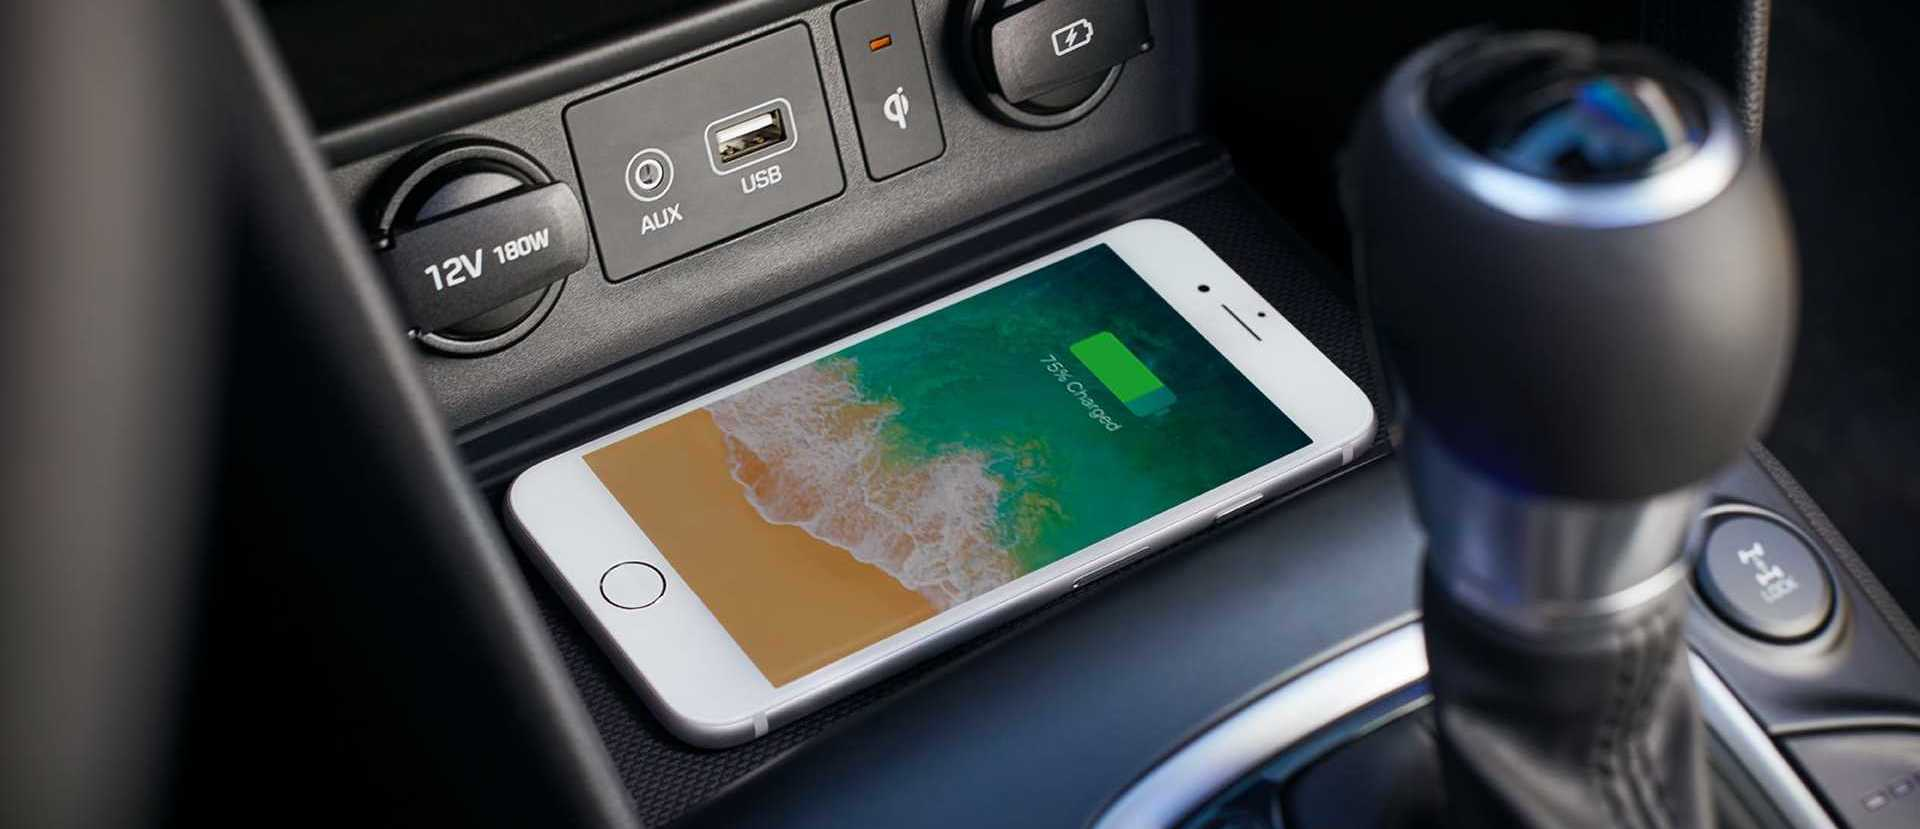 Available Wireless Charging in the 2020 Kona